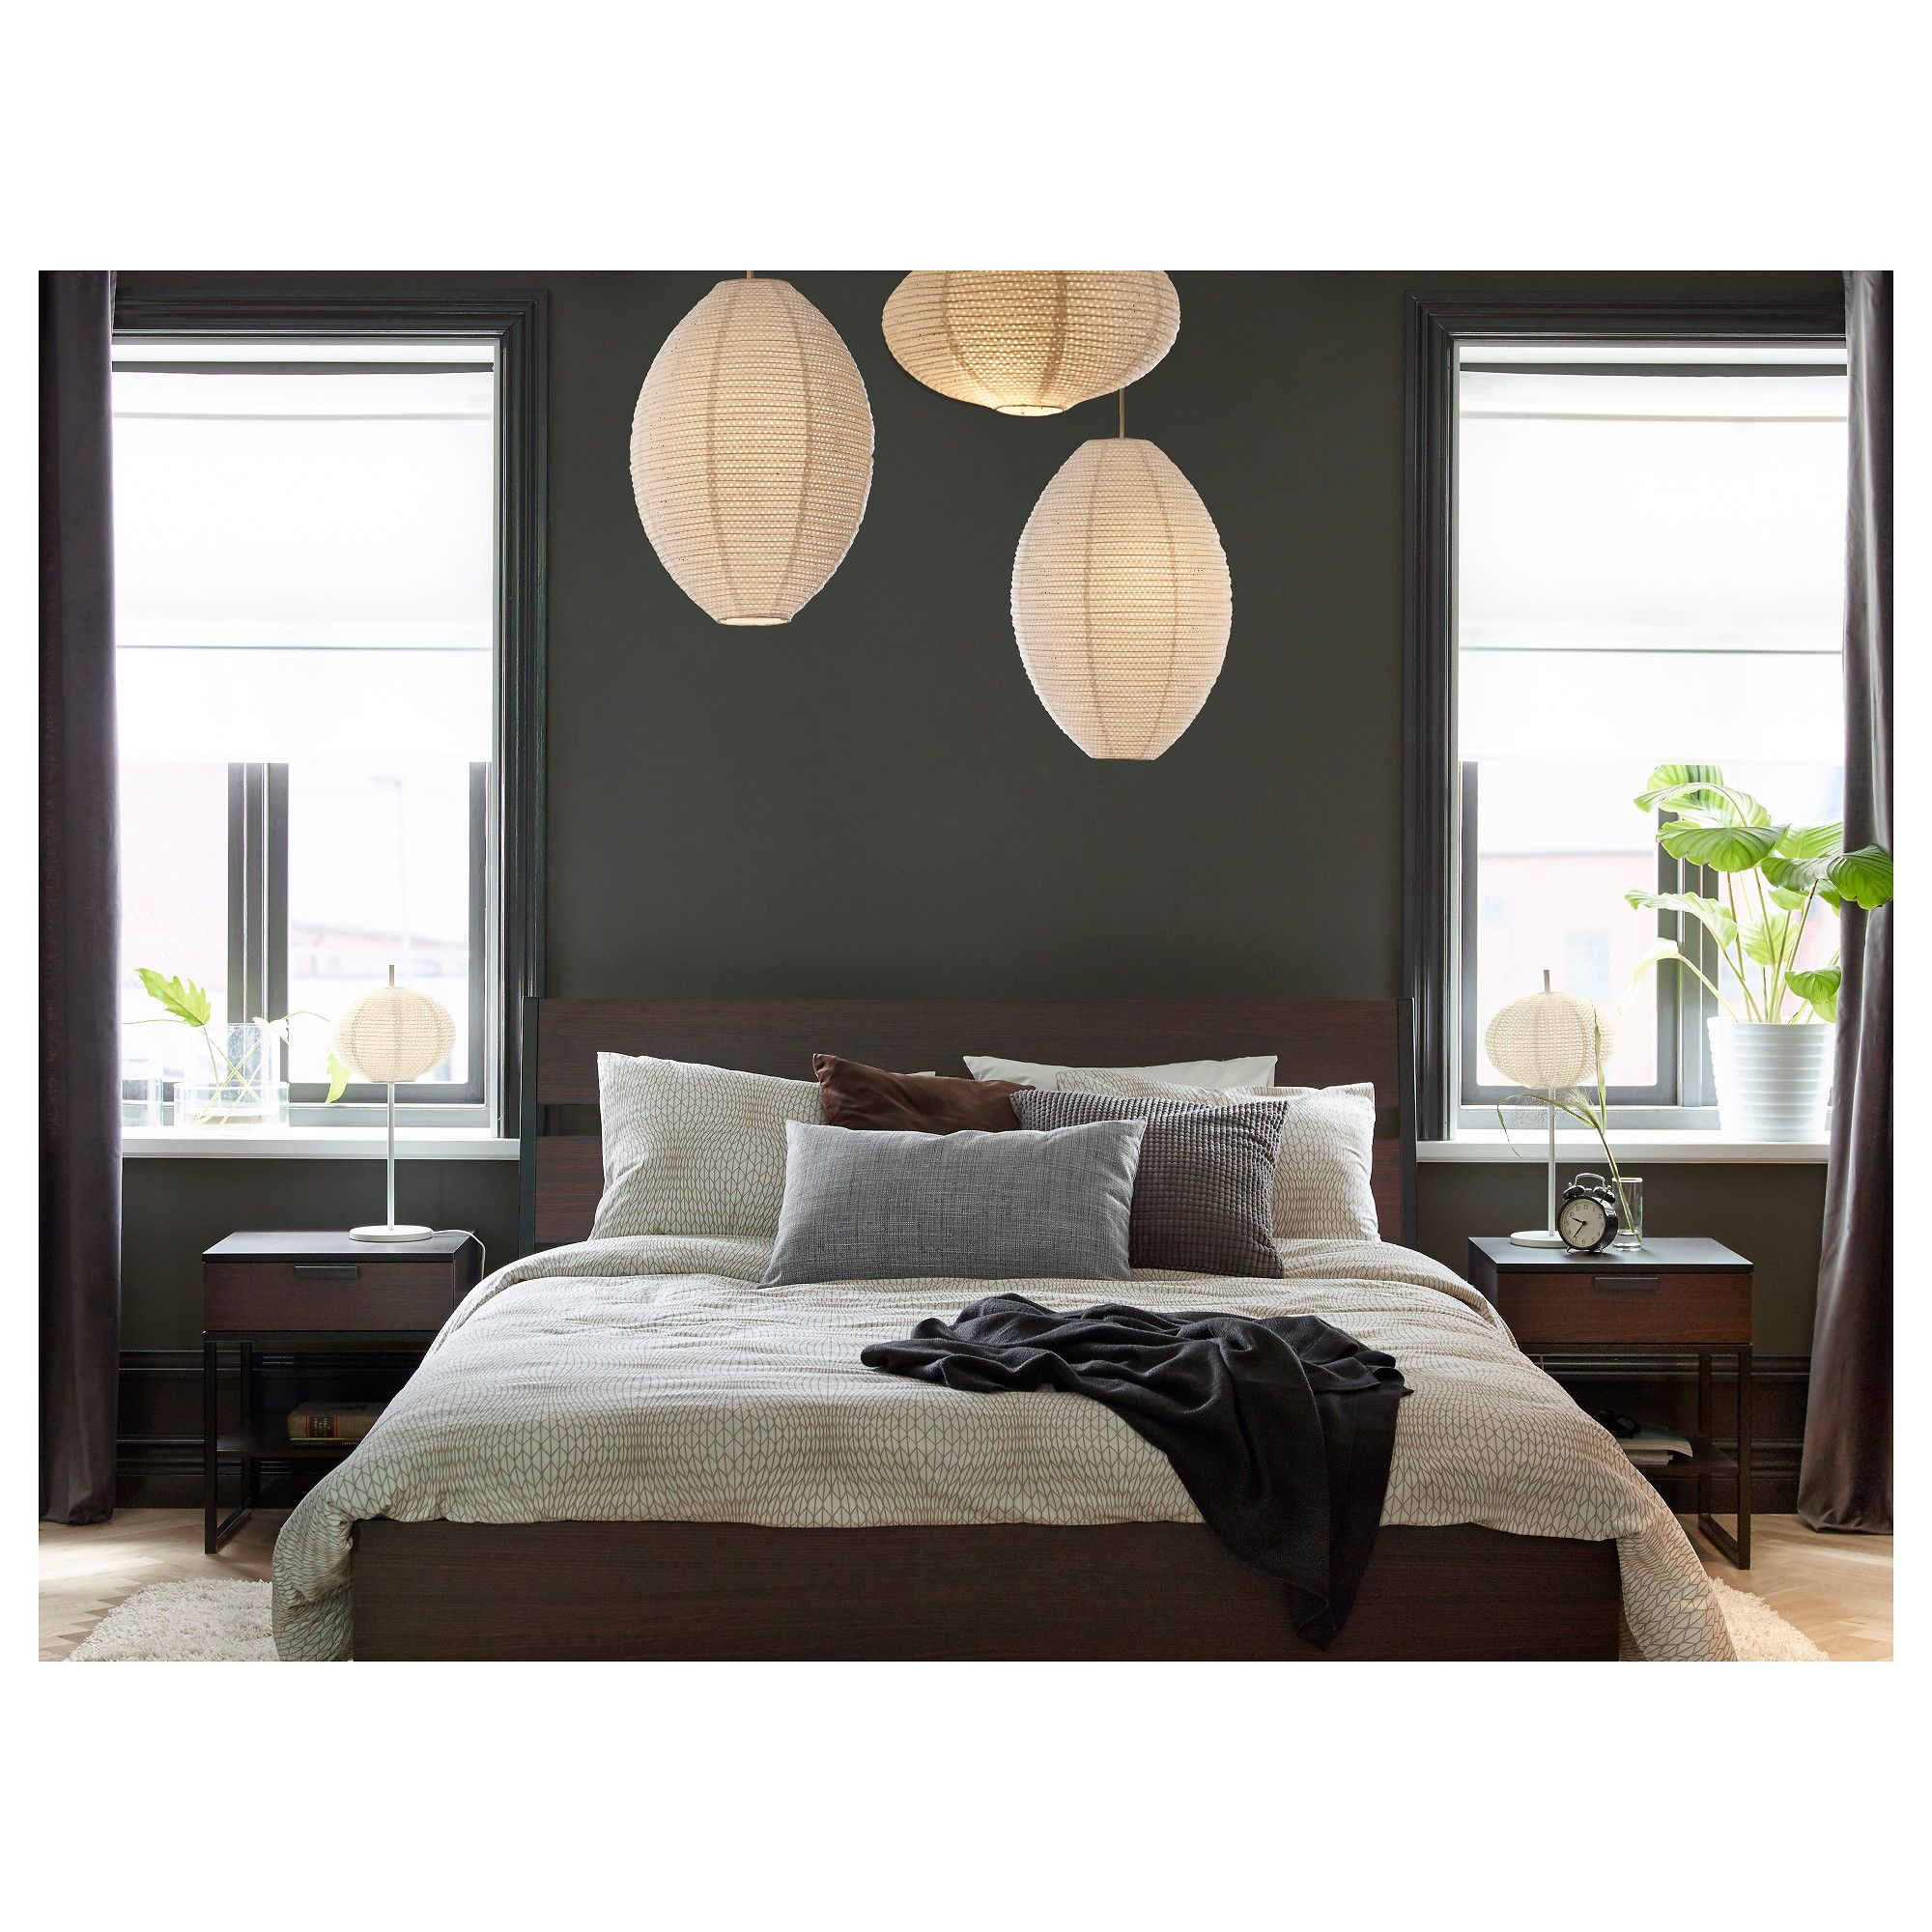 Ikea Trysil Bed Frame Dark Brown Luröy